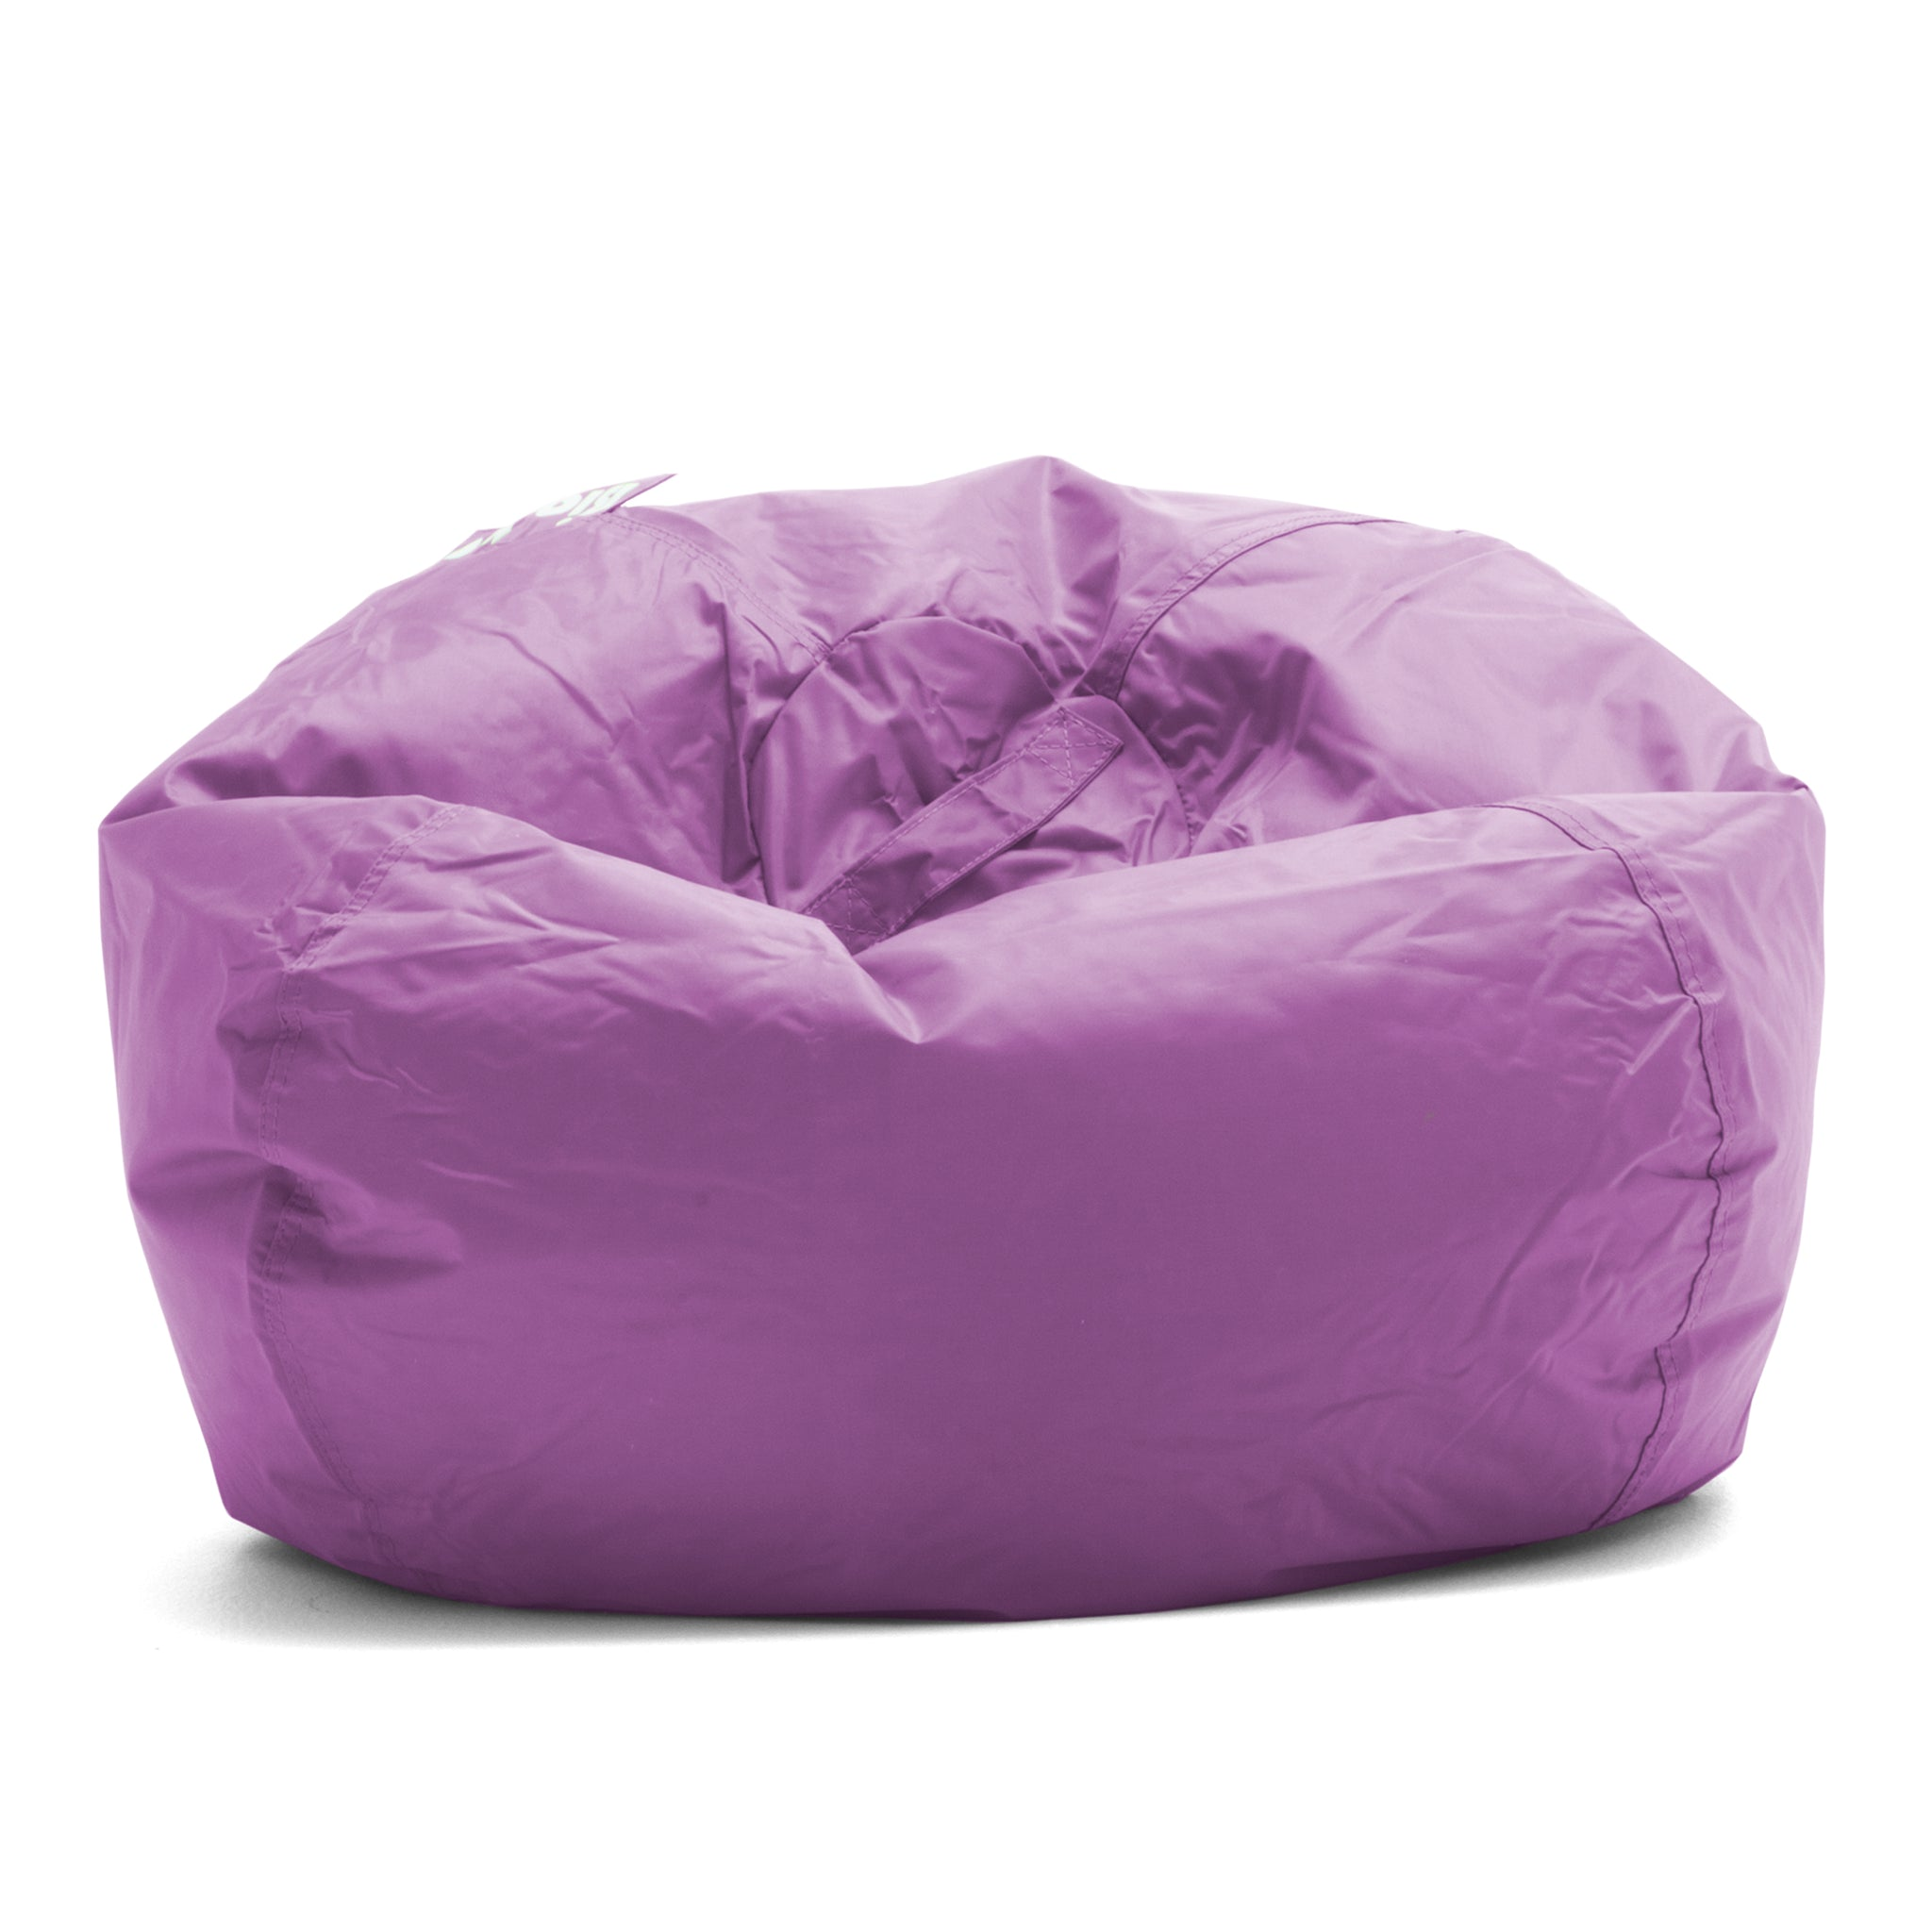 Superb 98 Big Joe Round Bean Bag Chair Purple Limon Furniture Onthecornerstone Fun Painted Chair Ideas Images Onthecornerstoneorg